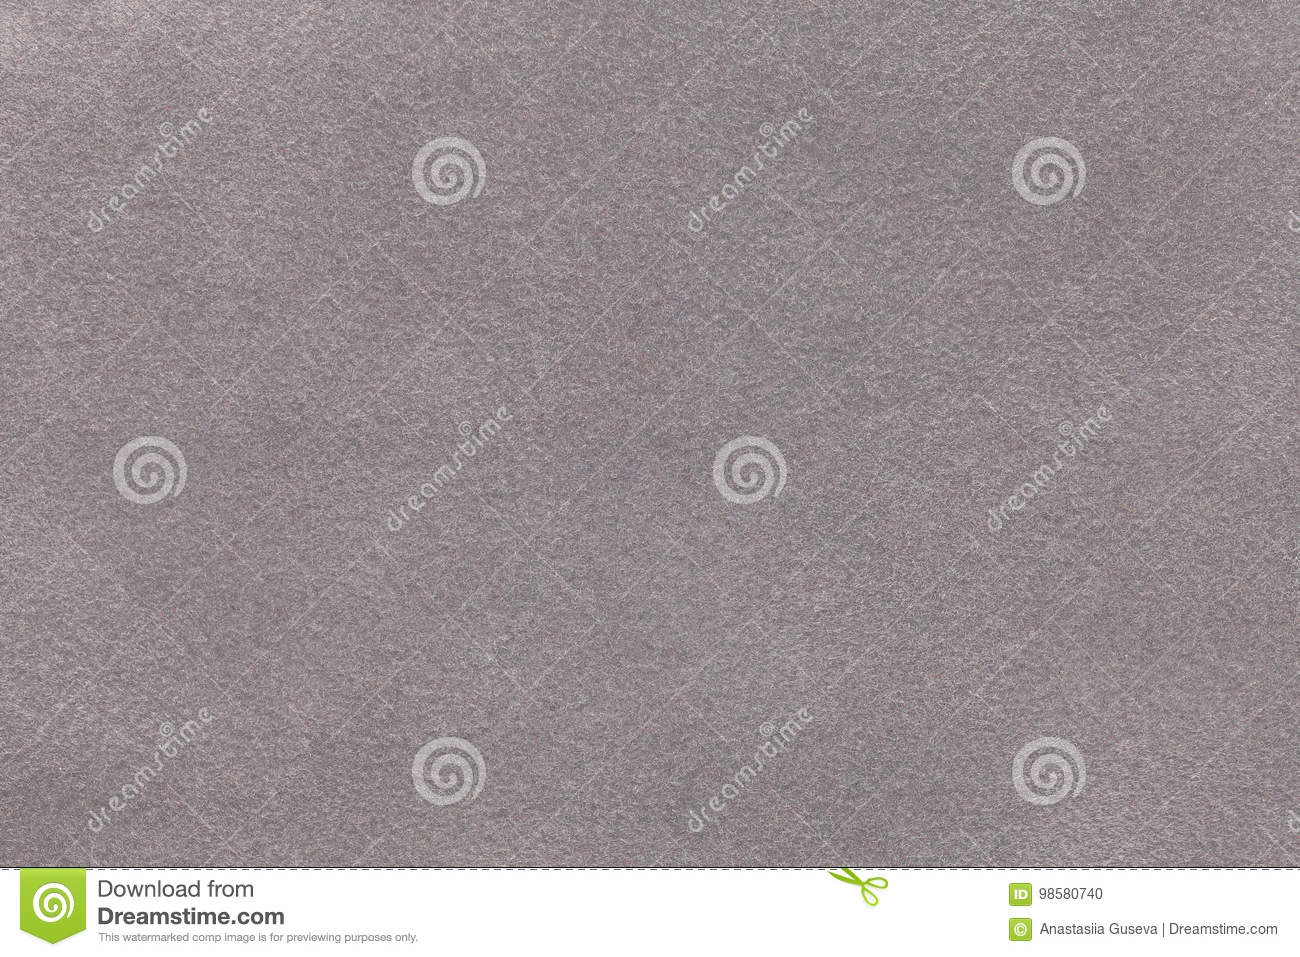 2 490 Gray Velvet Texture Photos Free Royalty Free Stock Photos From Dreamstime